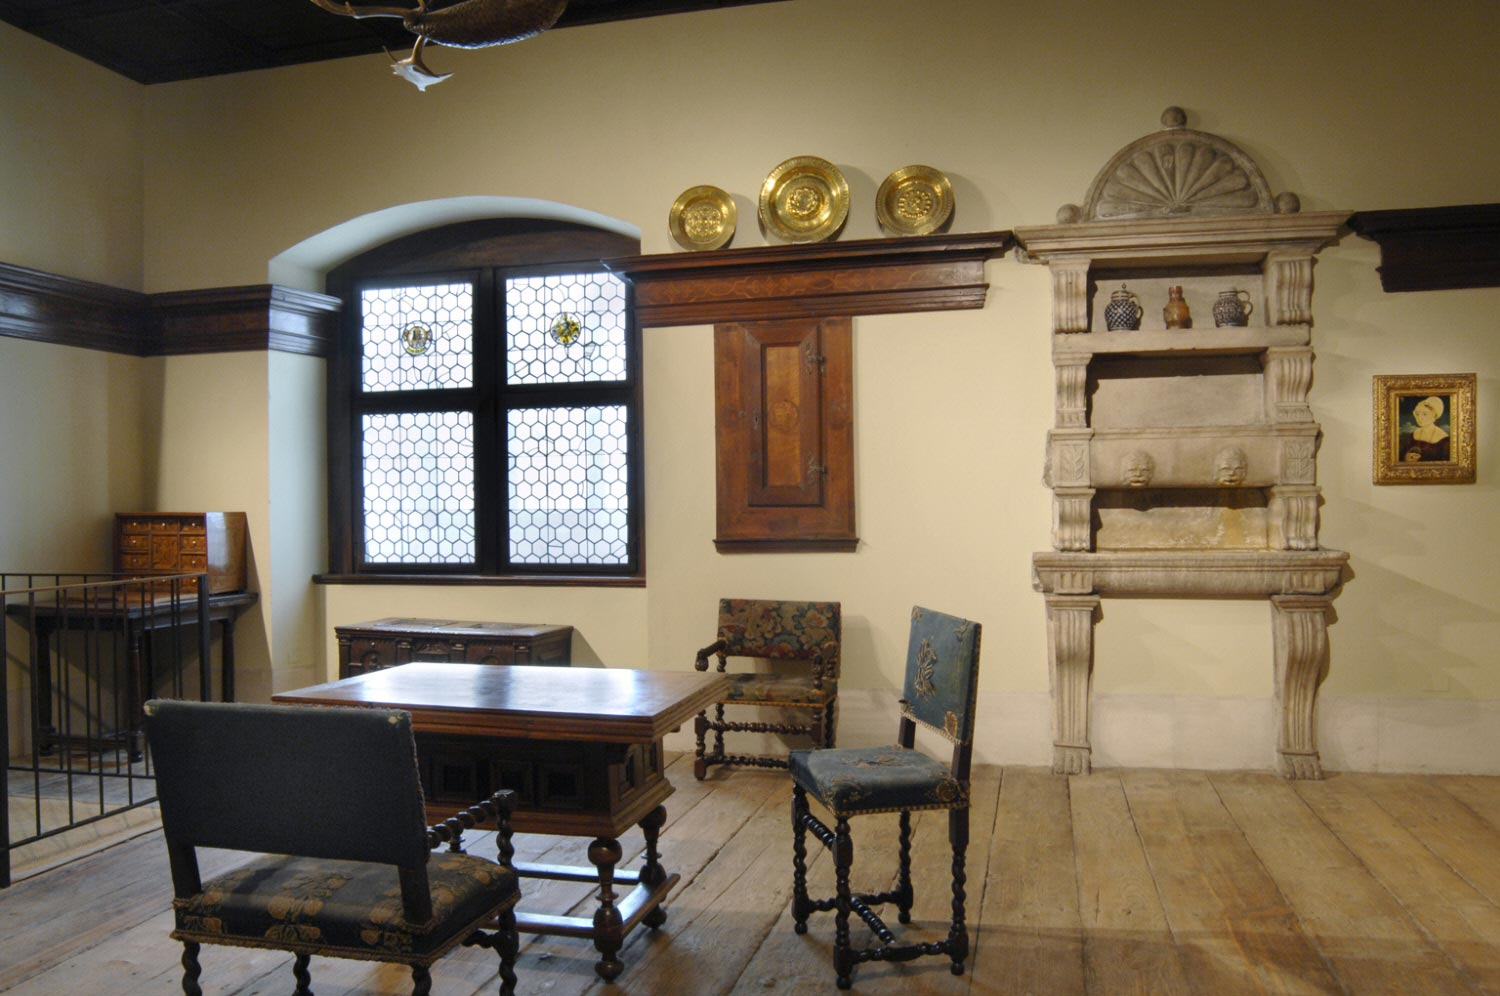 Room with Elements from the Stiegerhof